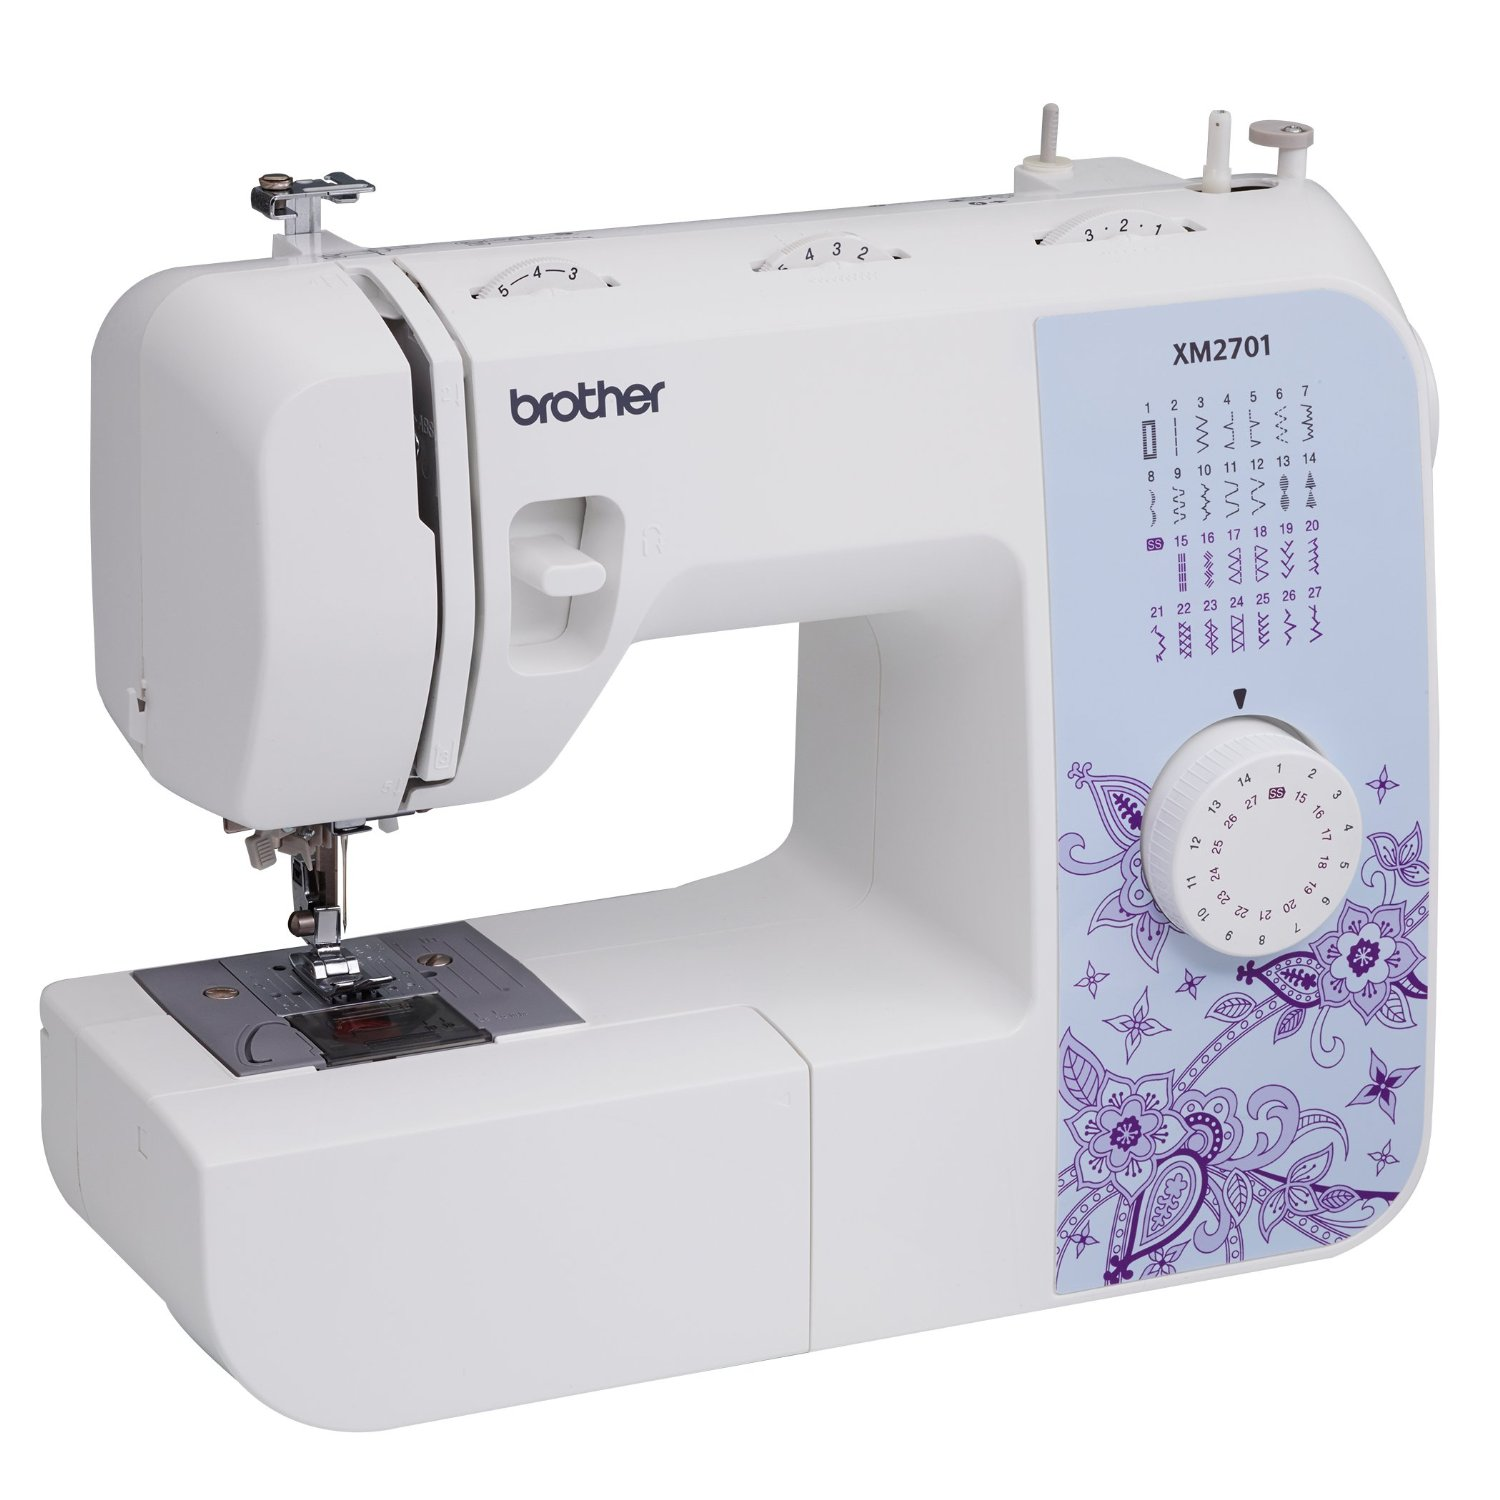 81gADh1LR9L. SL1500  Amazon: Brother XM2701 Lightweight, Full Featured Sewing Machine Only $91.80 Shipped (Reg. $169.99)